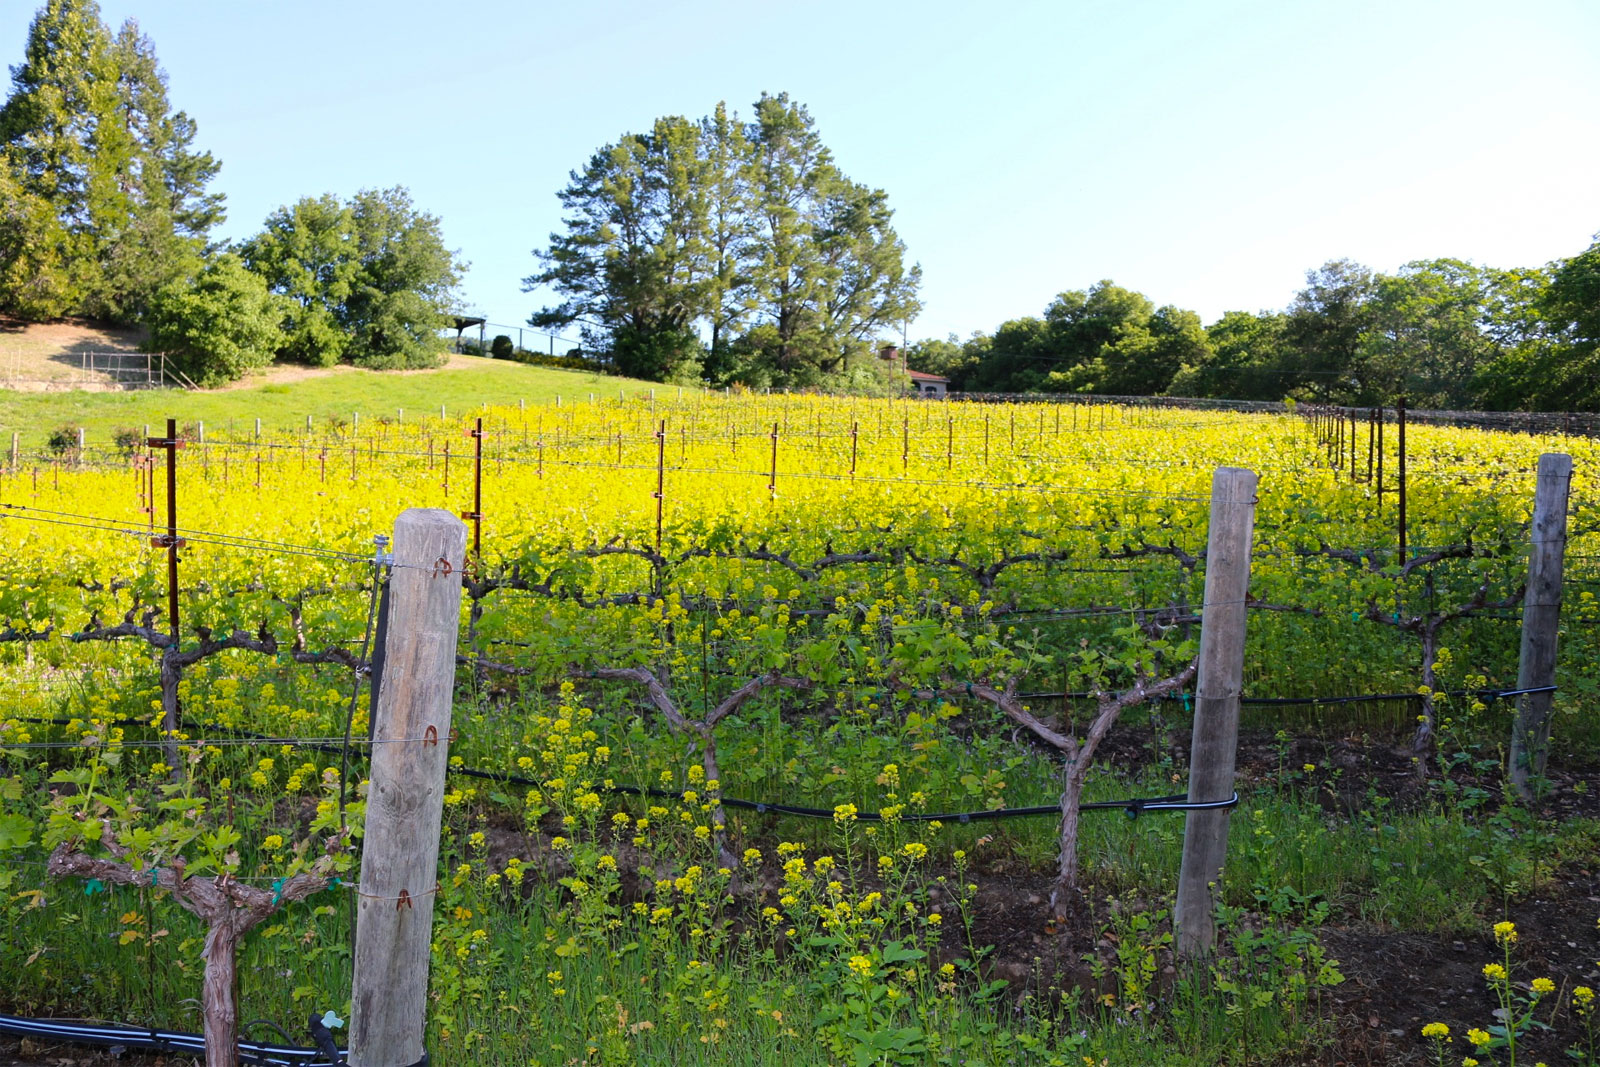 Mustard Grass in the vineyards.